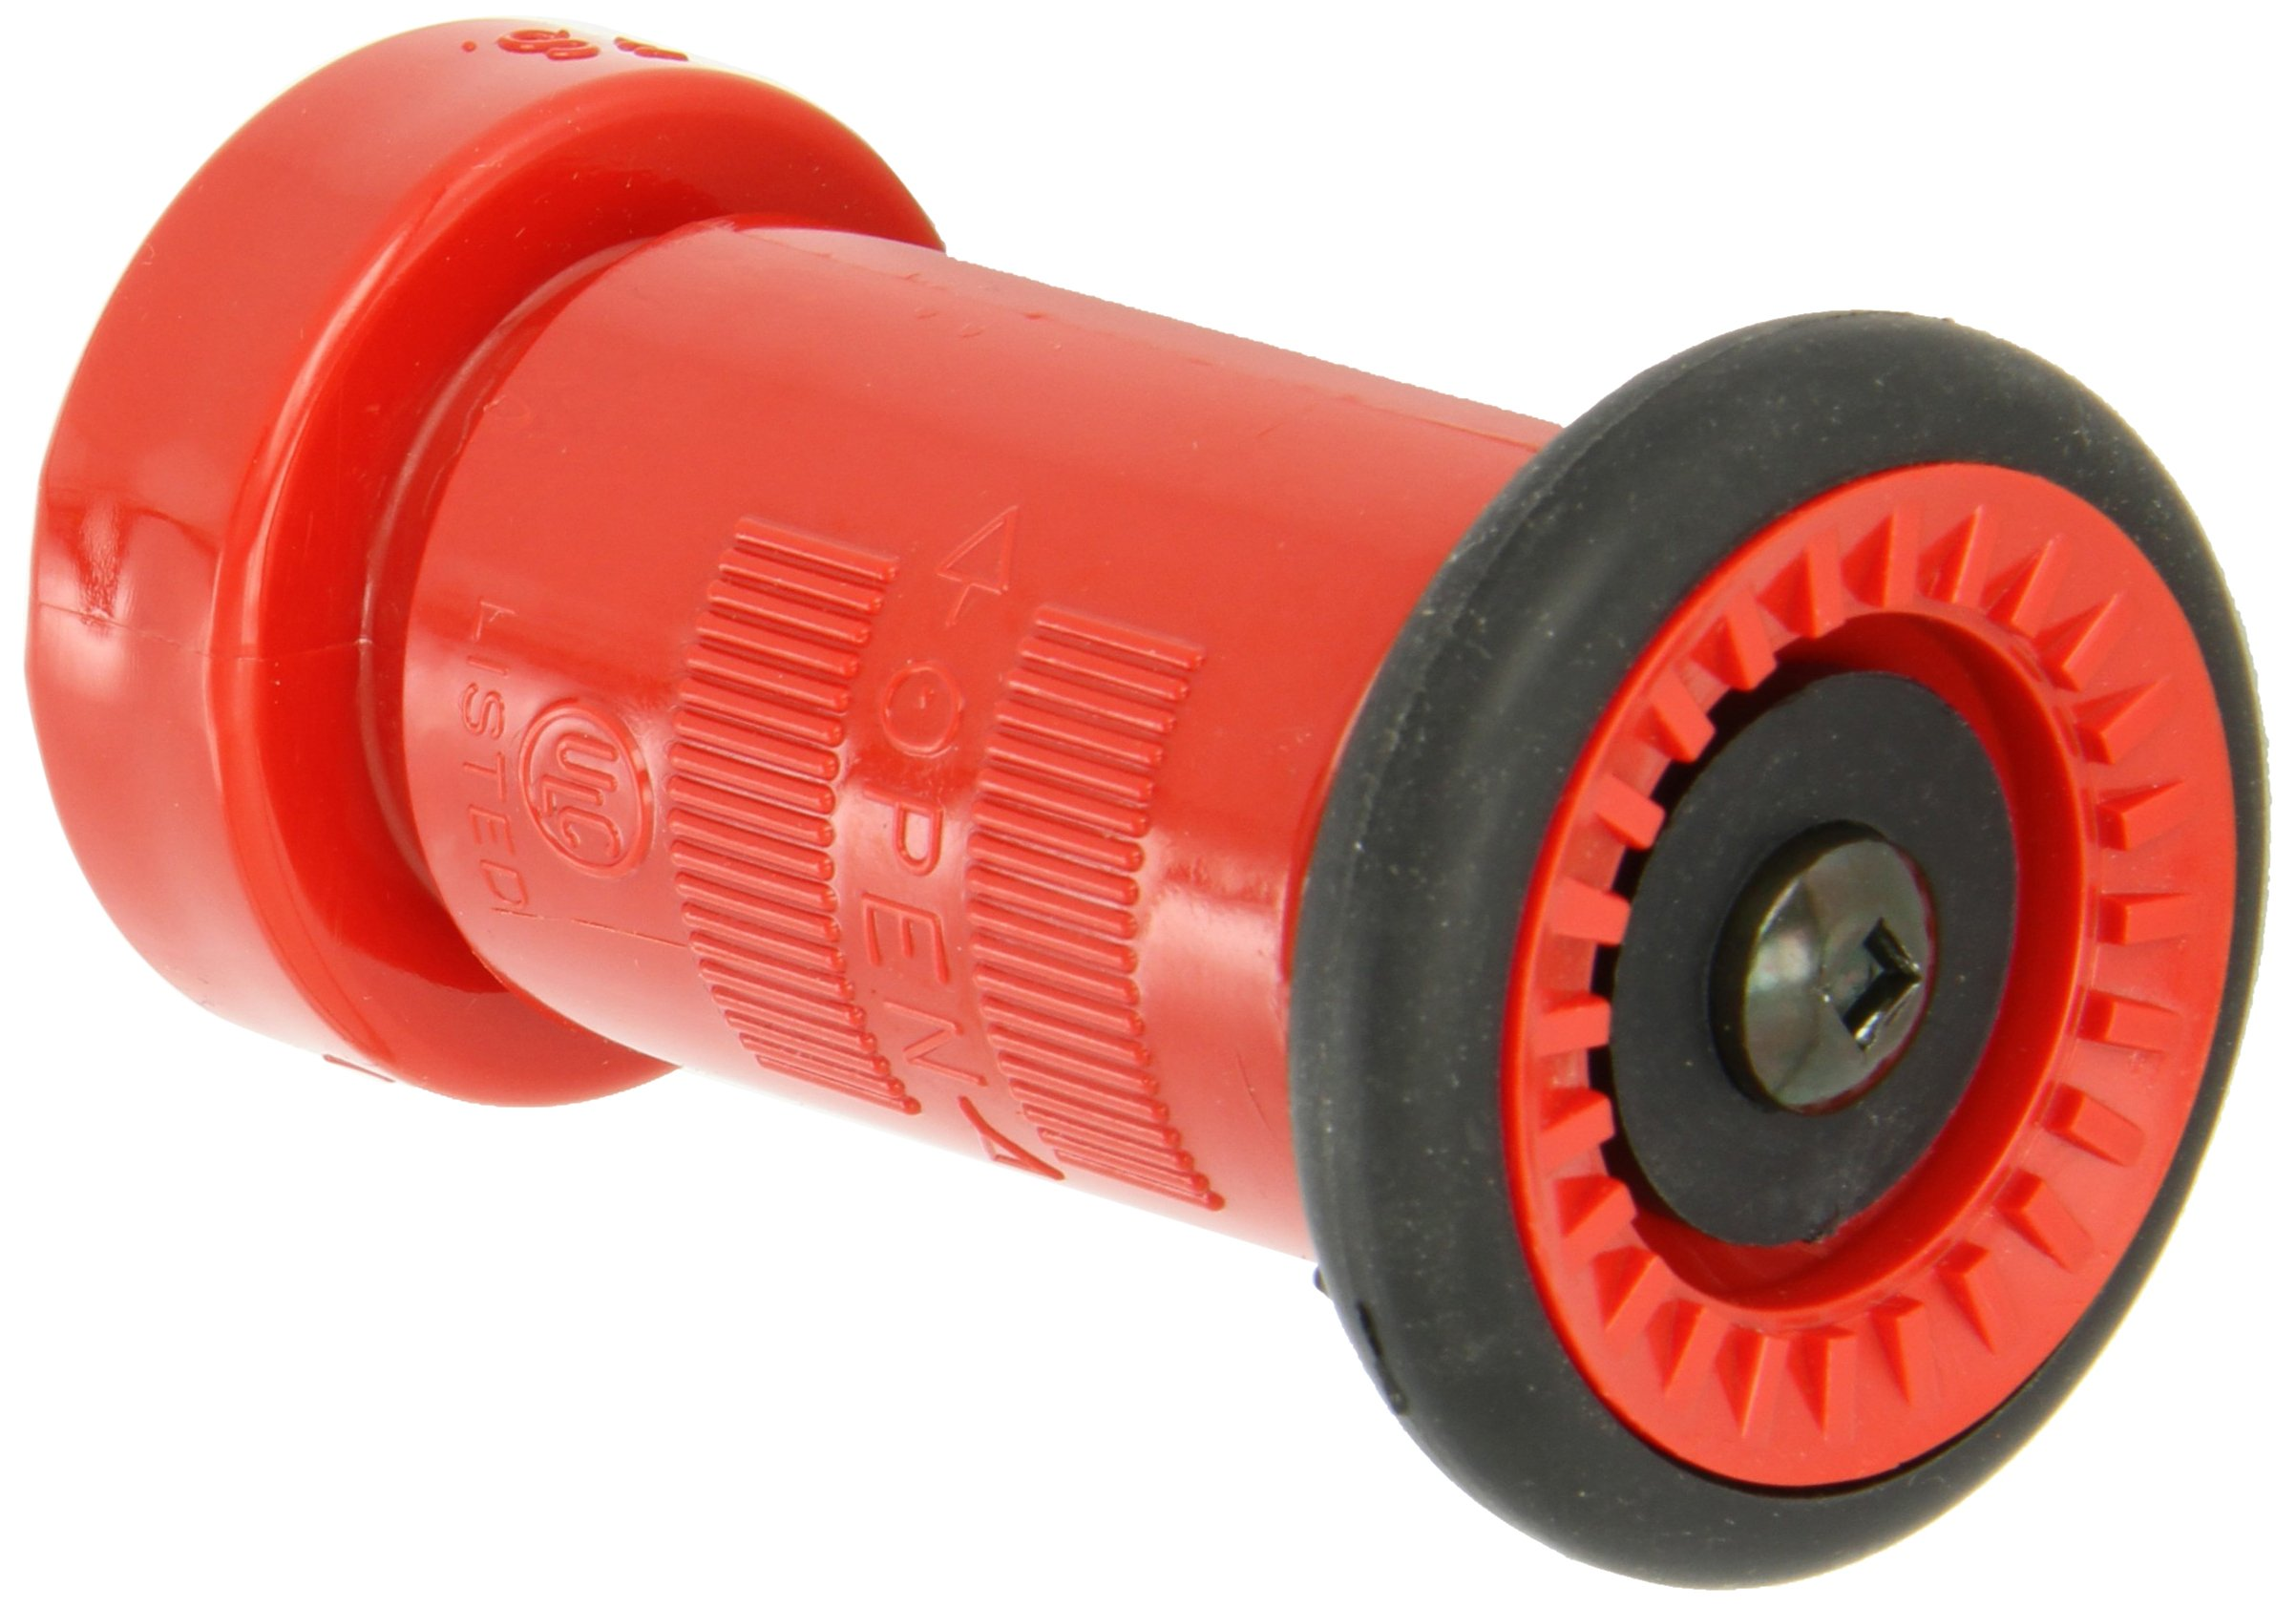 Spray Hose Nozzle: Moon 517-151 Polycarbonate Fire Hose Spray Nozzle 75 Gpm 1